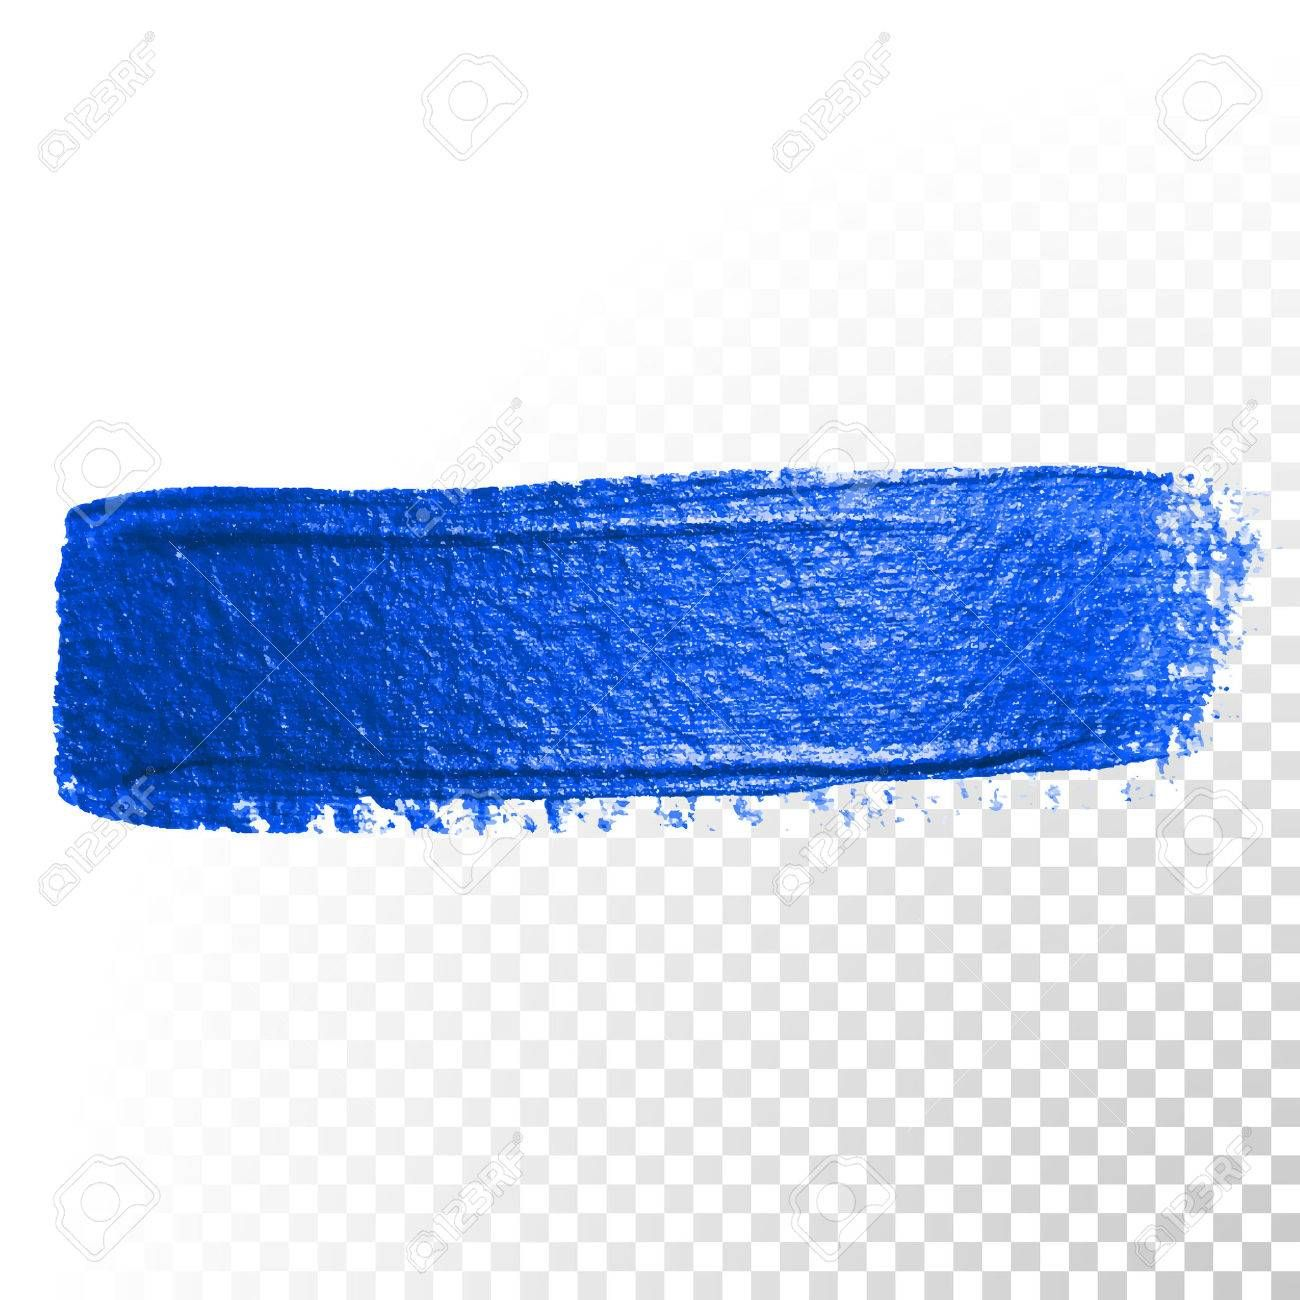 Deep Blue Watercolor Brush Stroke Abstract Shape Vector Oil